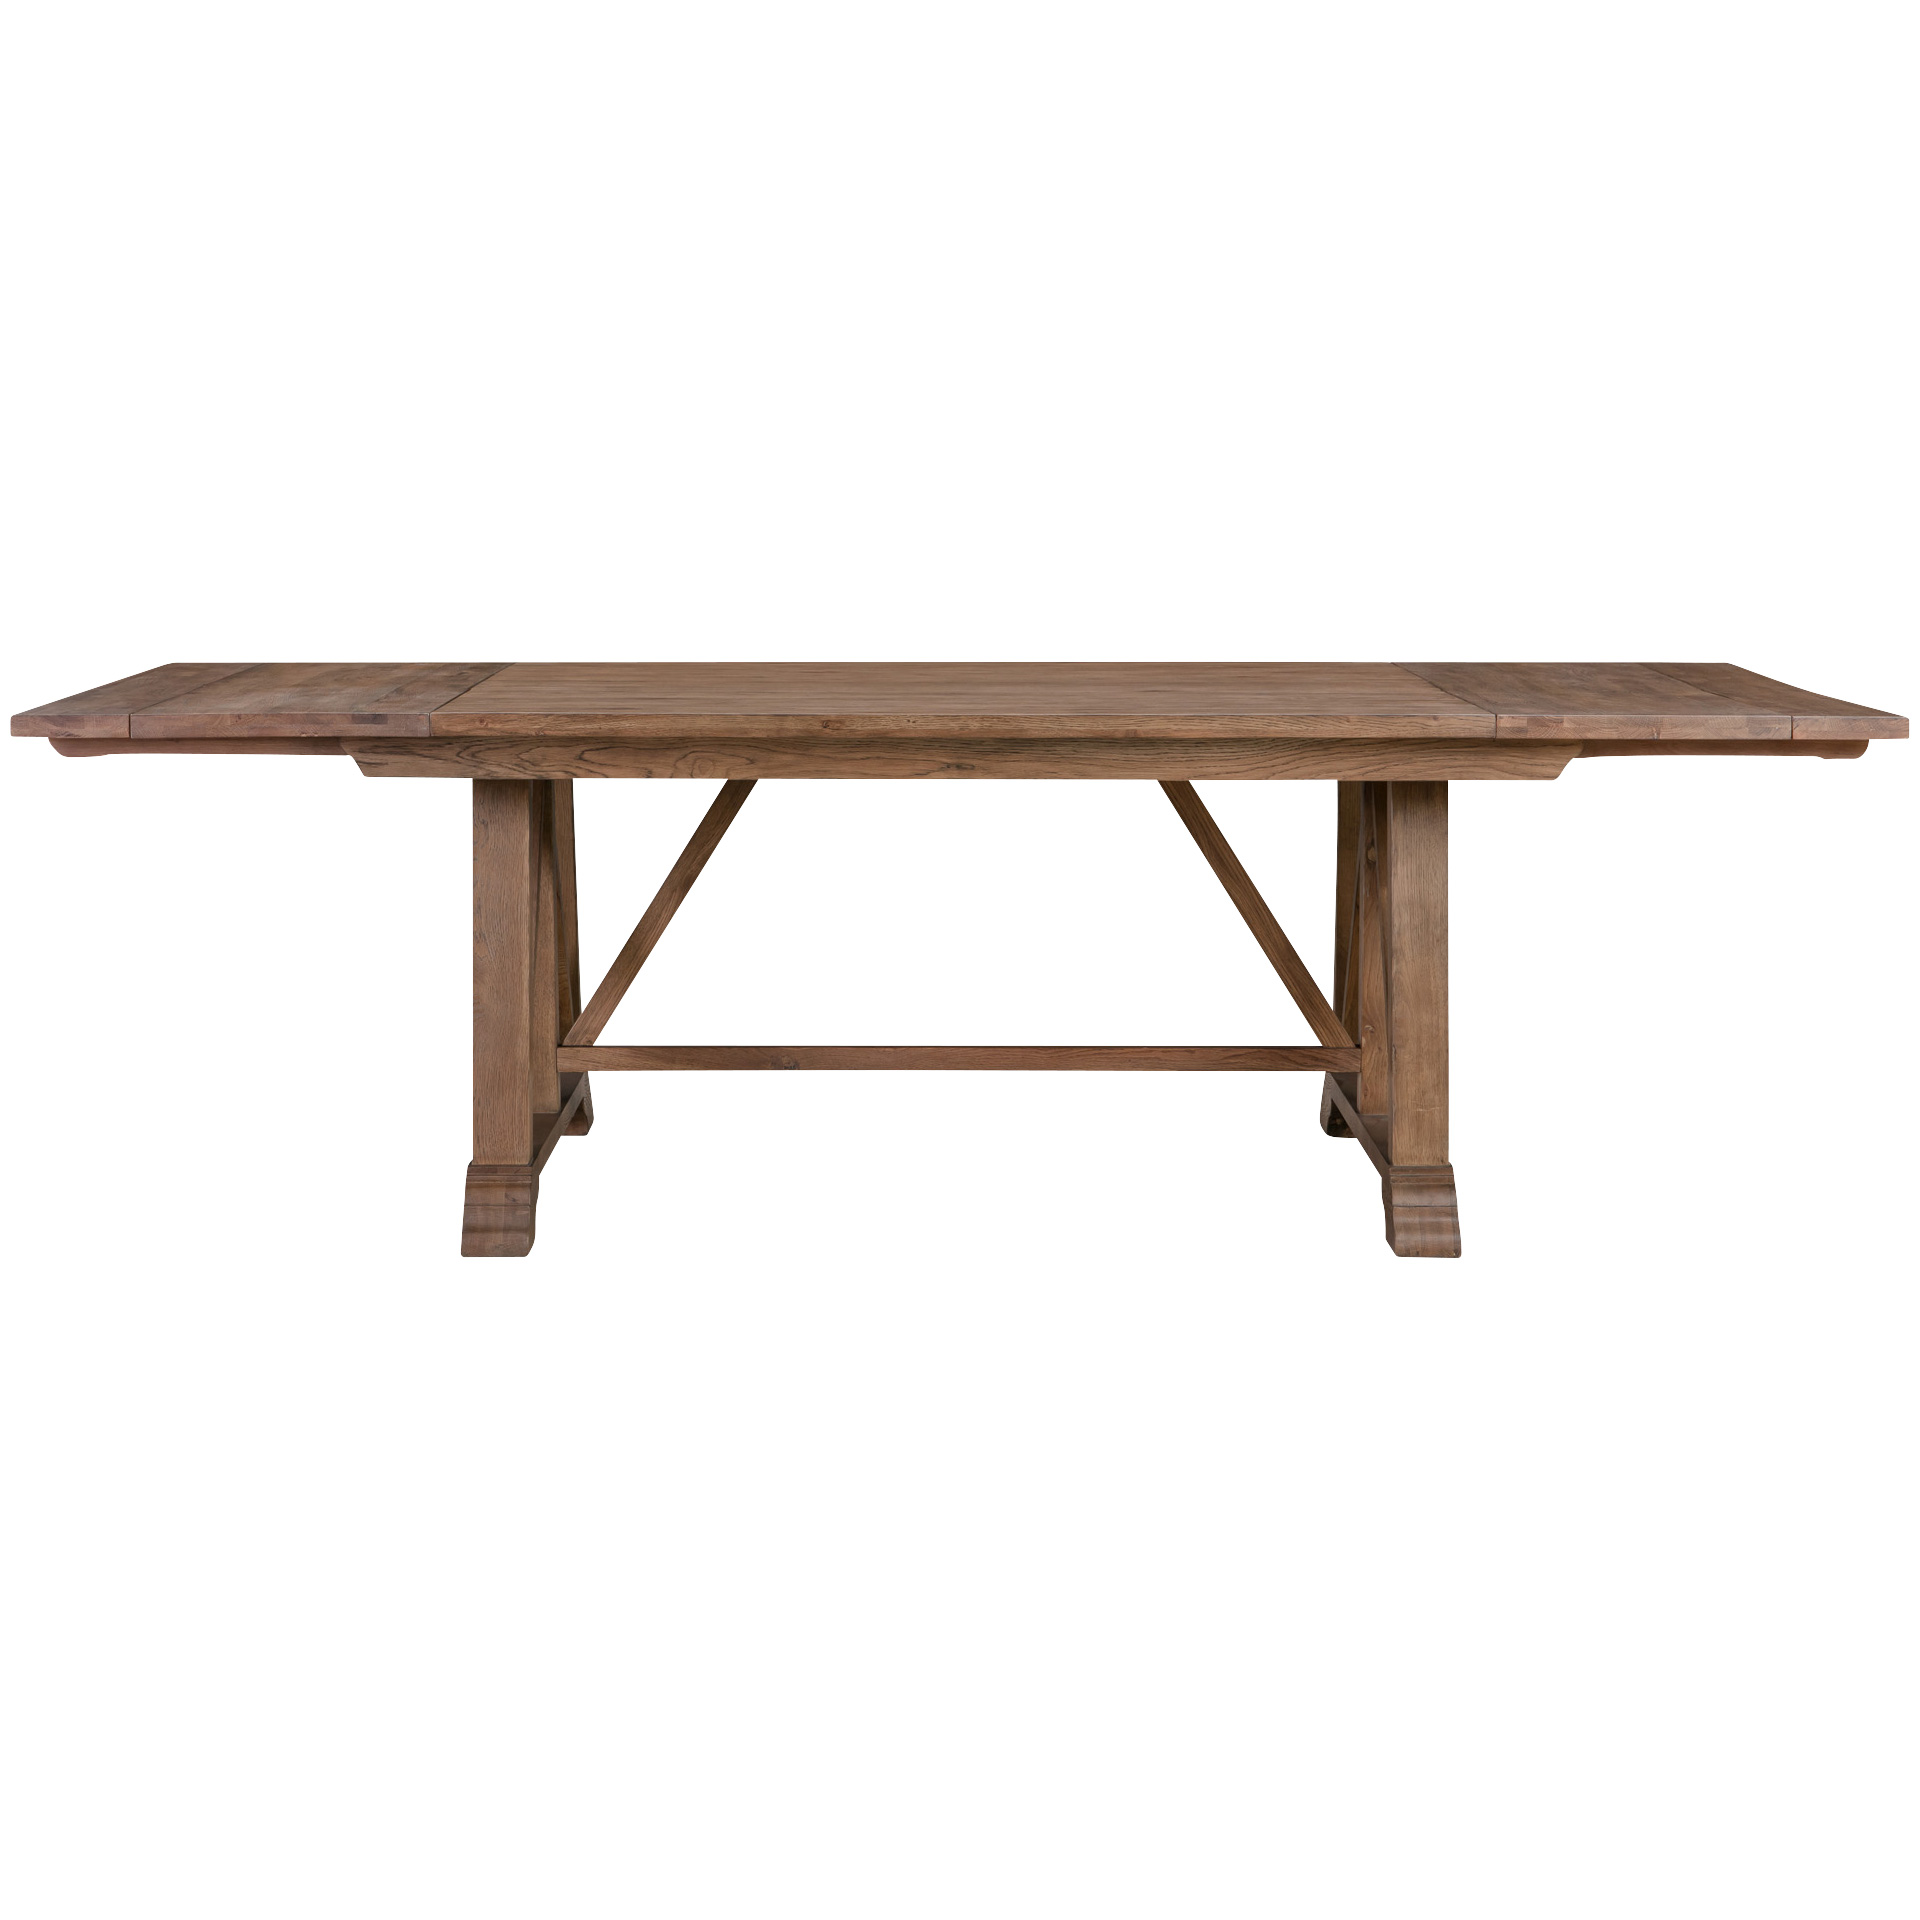 America | McMillian Heights Tawny Dining Trestle Table | Red